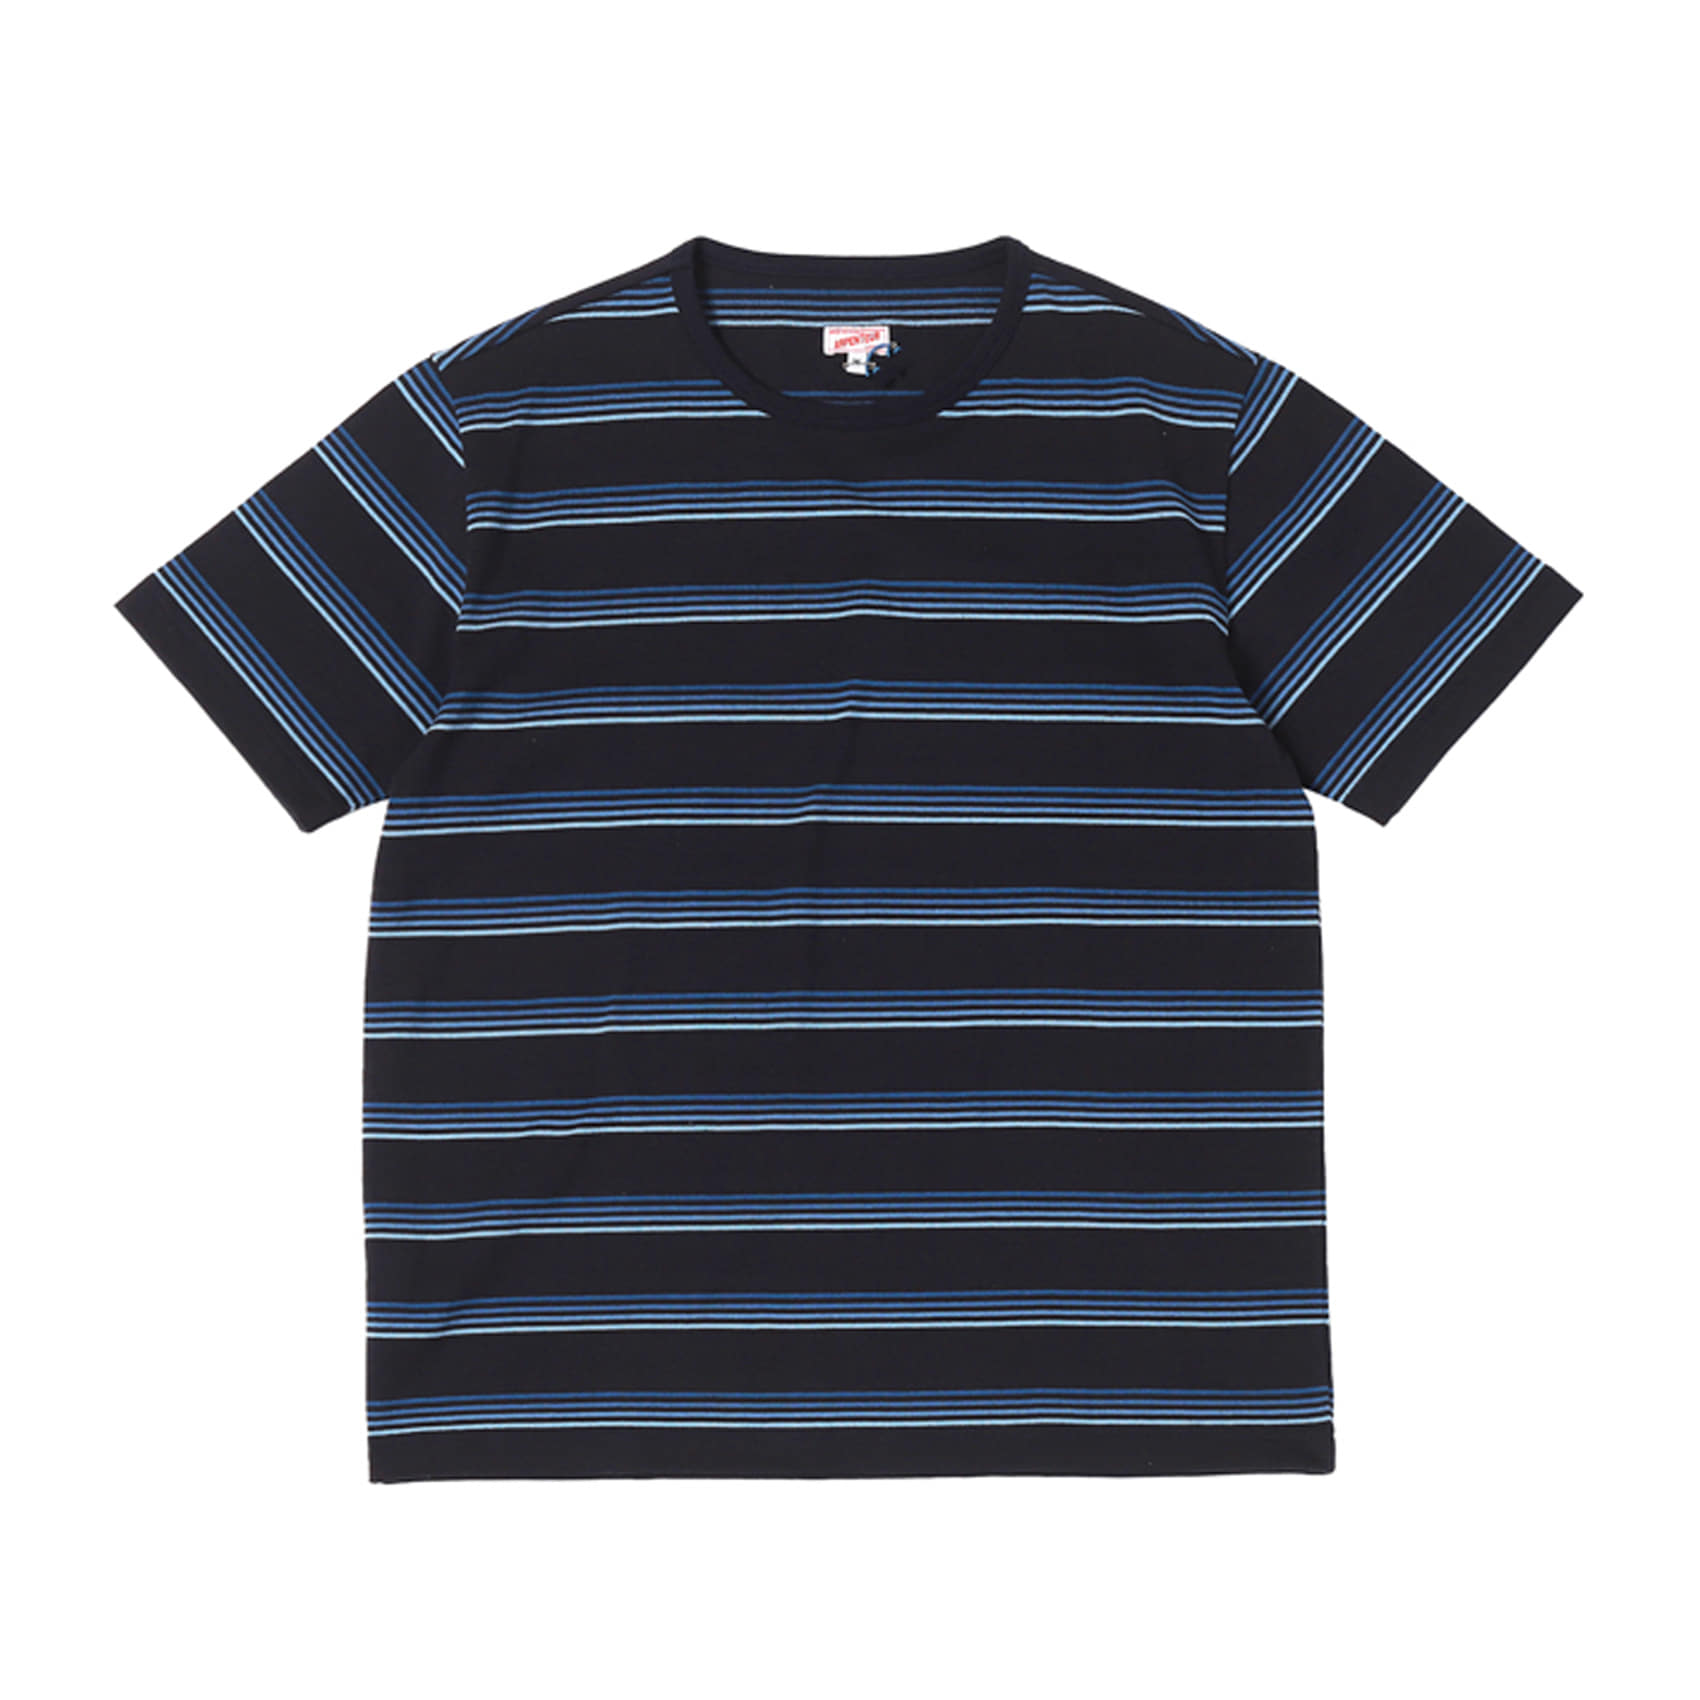 MATCH T-SHIRT - NAVY / QUADRUPLE BLUE